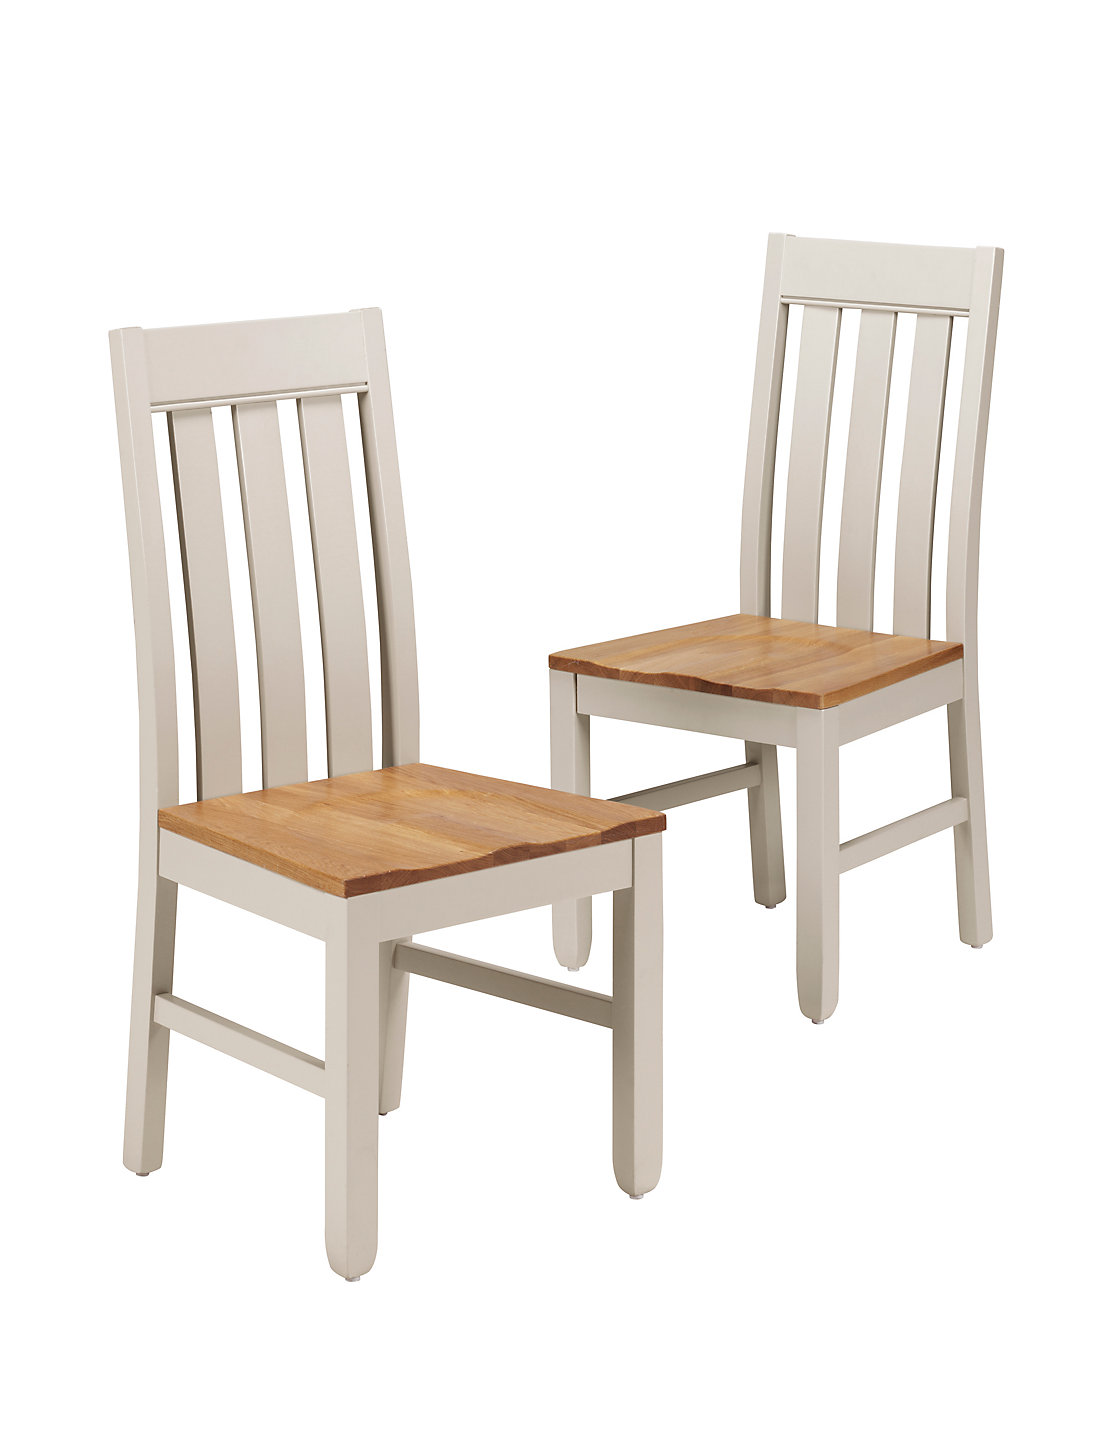 2 Padstow Slat Back Dining Chairs. Kitchen   Dining Room Furniture   Offers   M S